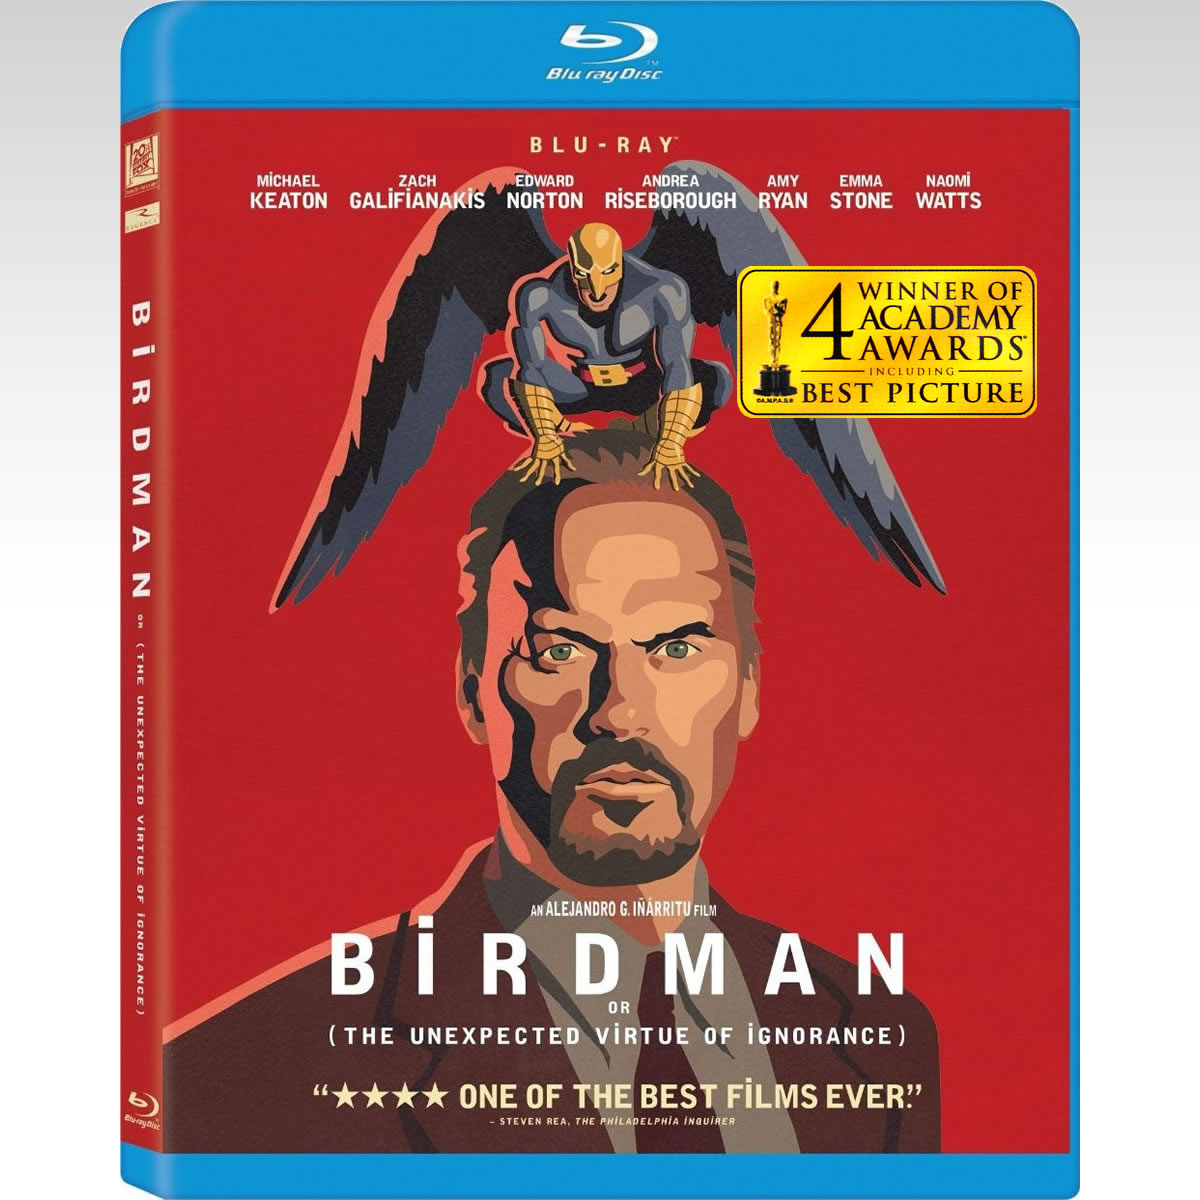 BIRDMAN: OR (THE UNEXPECTED VIRTUE OF IGNORANCE) - BIRDMAN: ή (Η ΑΠΡΟΣΜΕΝΗ ΑΡΕΤΗ ΤΗΣ ΑΦΕΛΕΙΑΣ) (BLU-RAY)